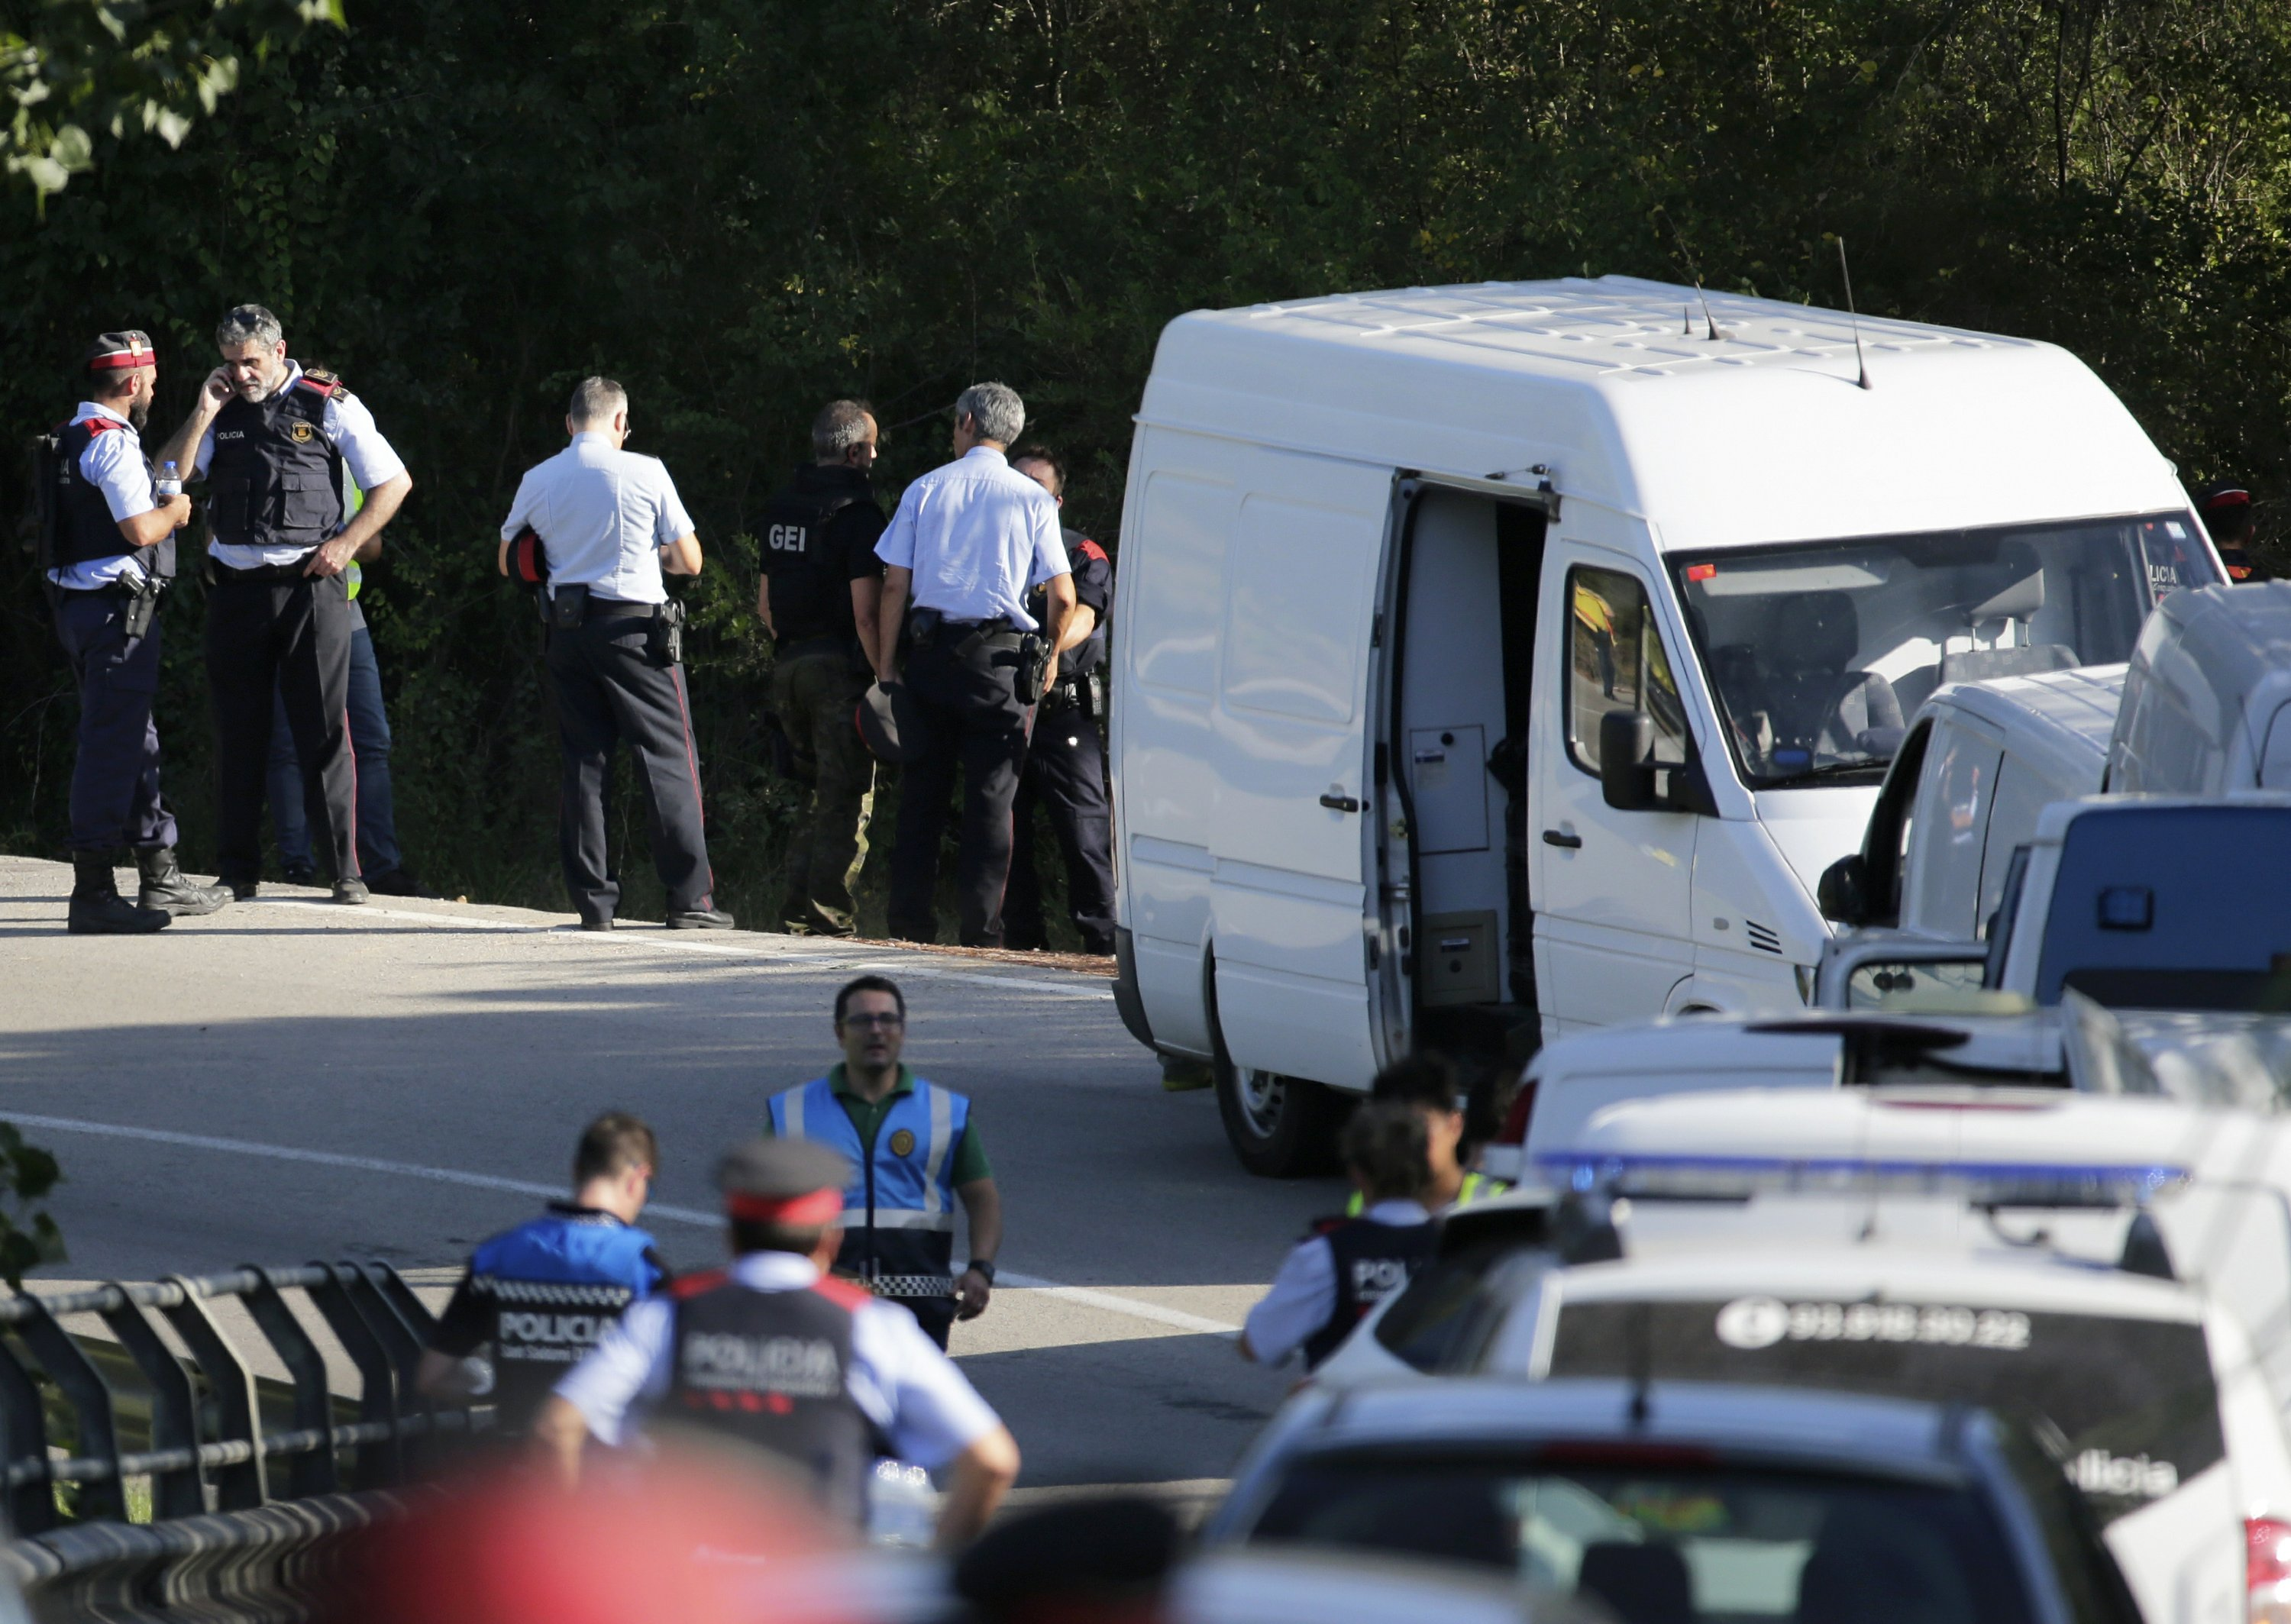 Police: Fugitive's death 'breaks' cell behind Spain attacks